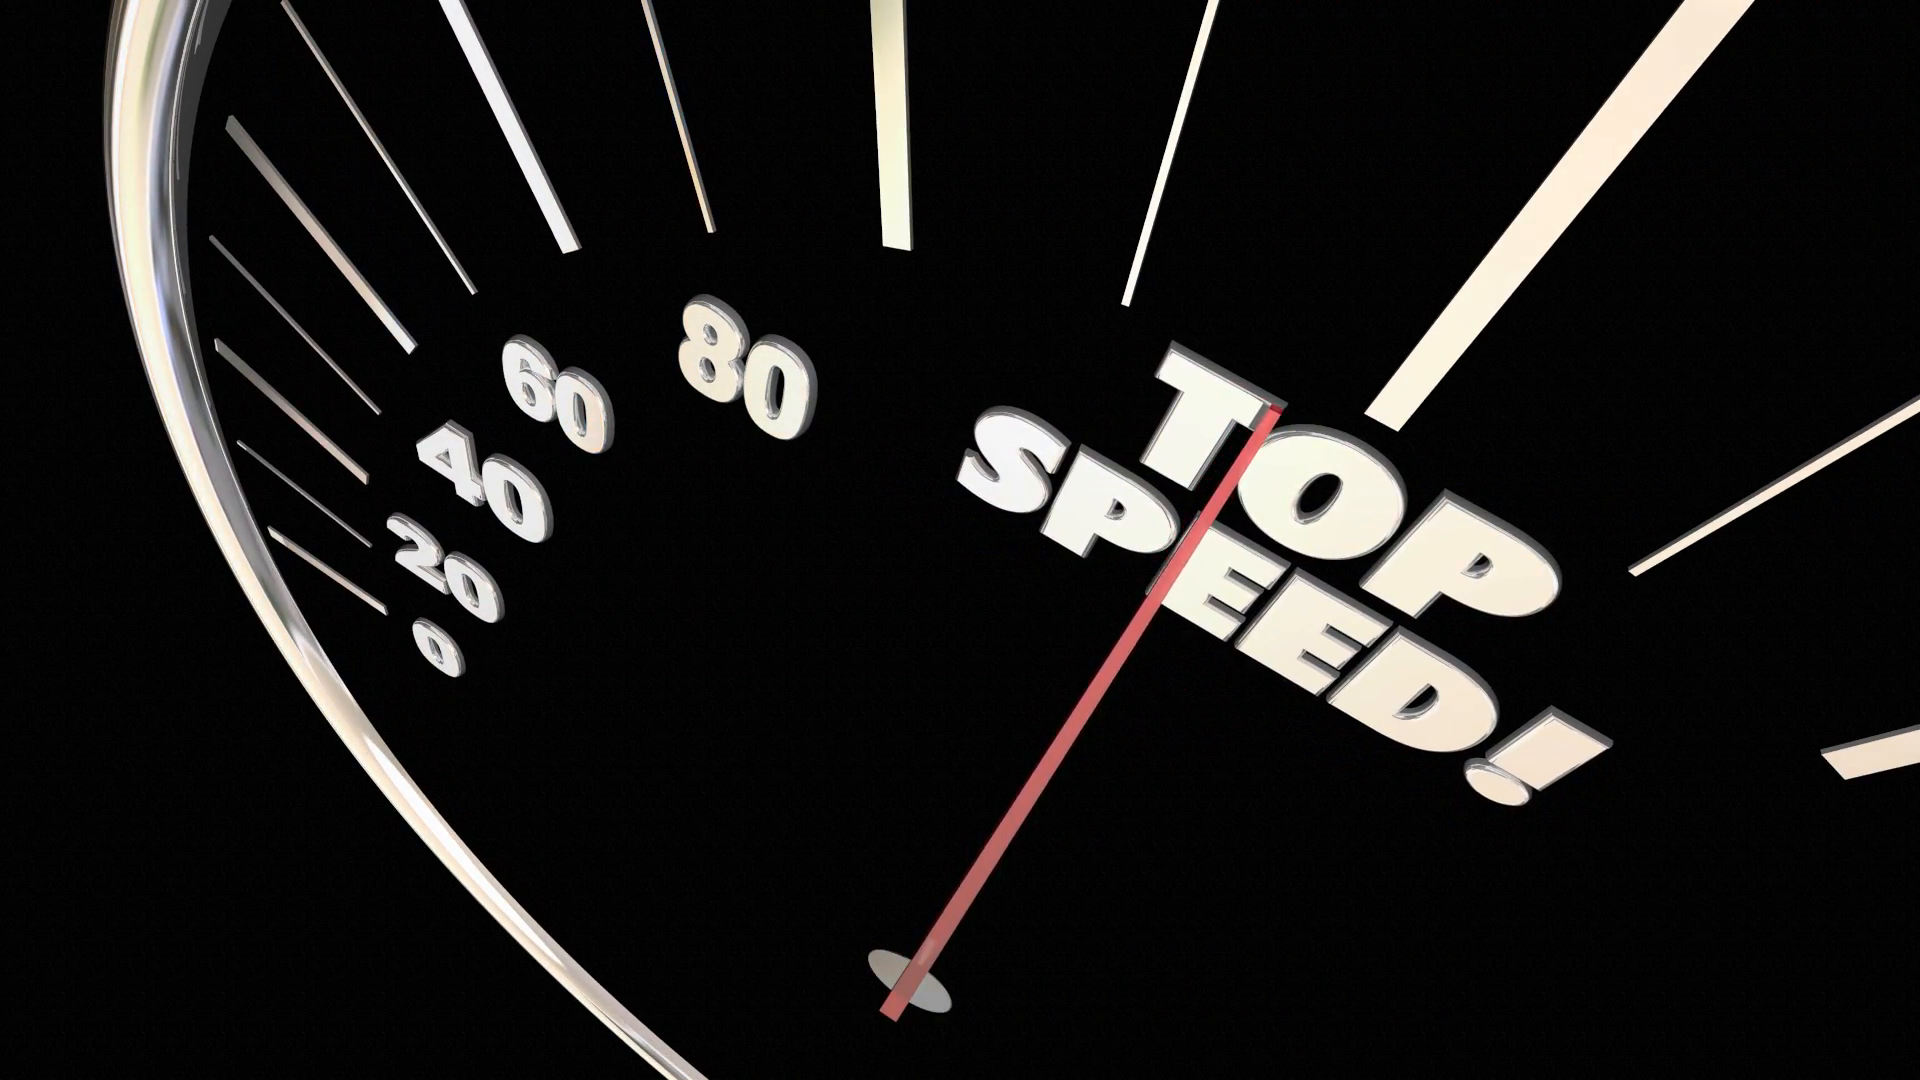 top-speed-fast-response-service-speedometer-words-3d-animation_rmiau0m7__F0013.png